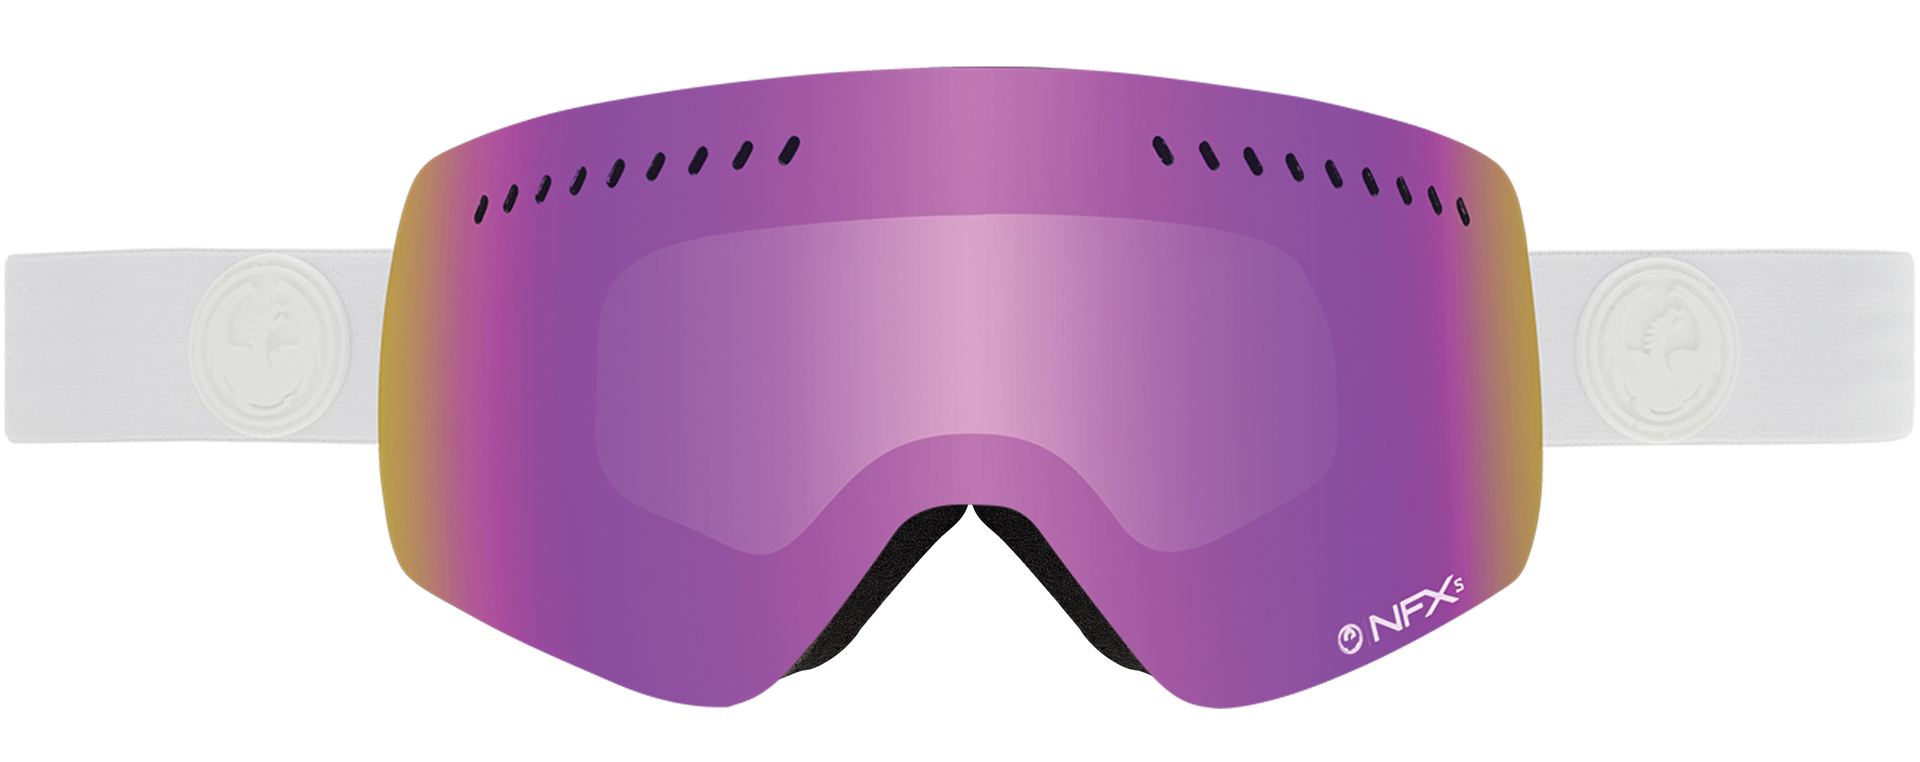 NFXS Schneebrille 2017 whiteout/pink ionized | Warehouse One